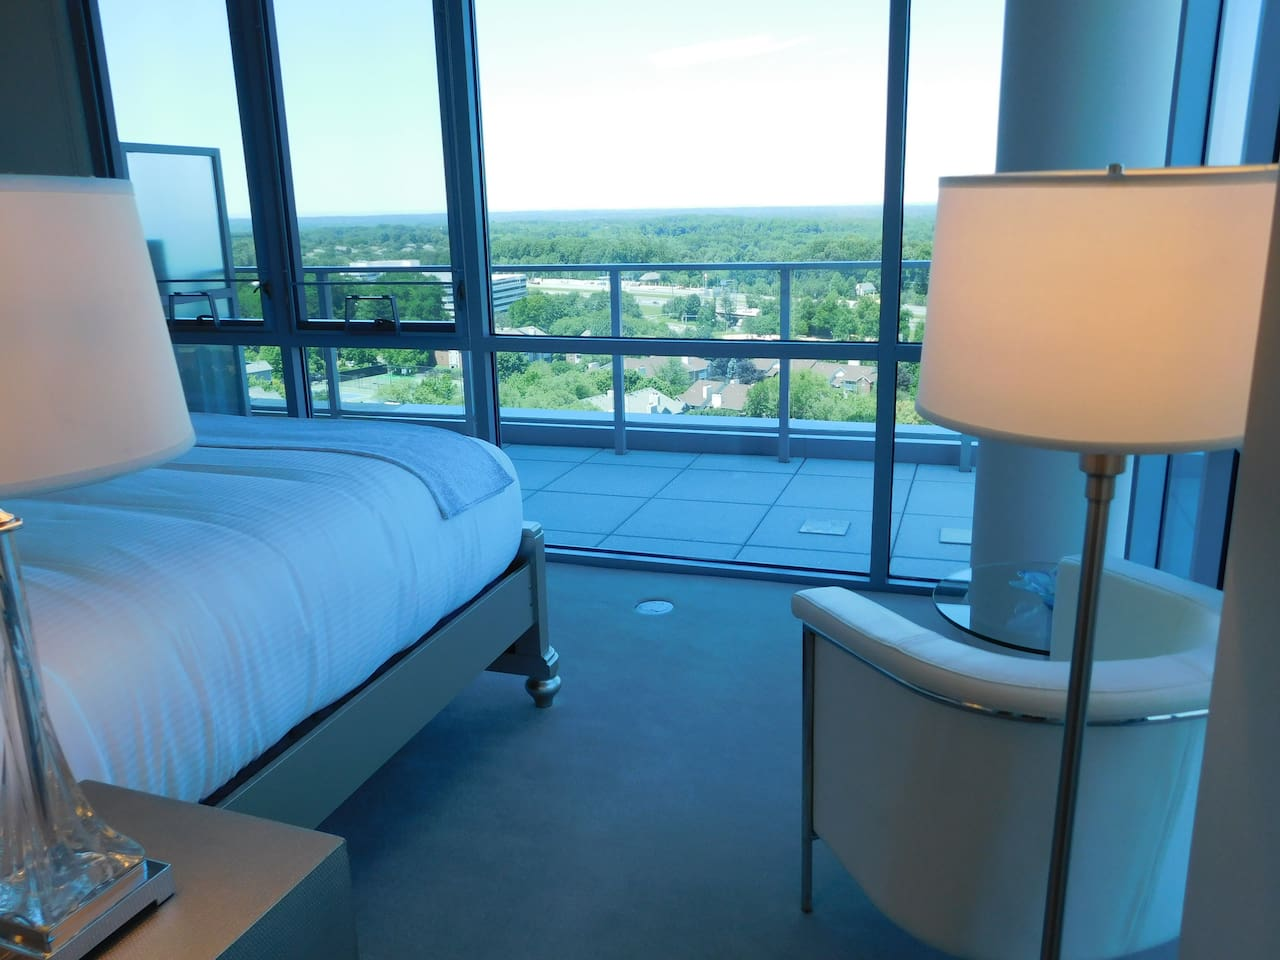 Wake to incredible views over Virginia from the floor-to-ceiling windows in the master bedroom